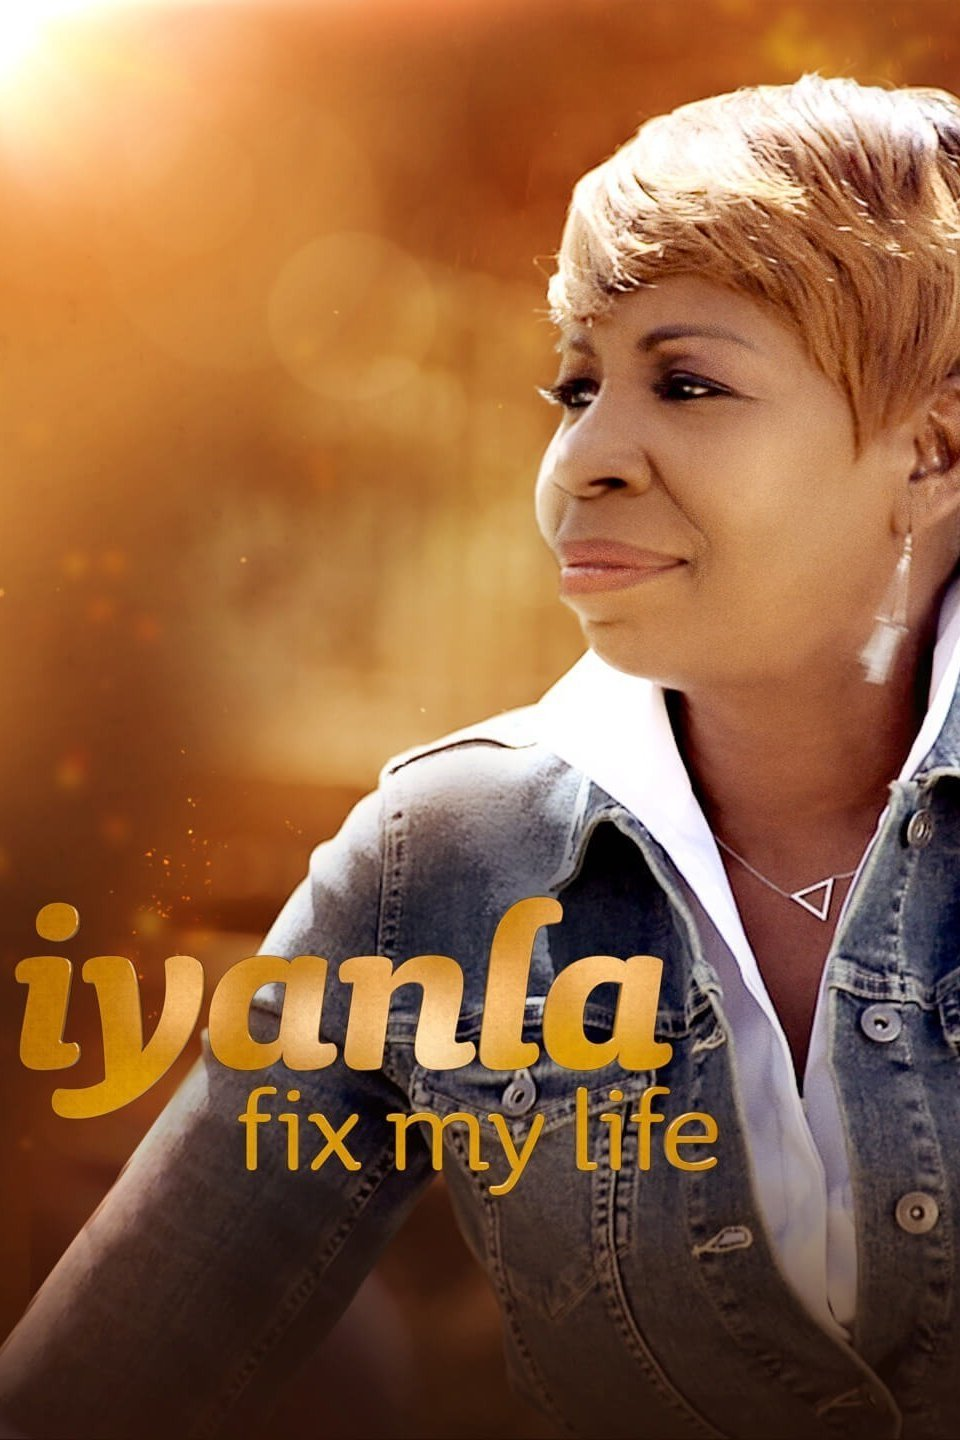 Iyanla, Fix My Life - Season 7